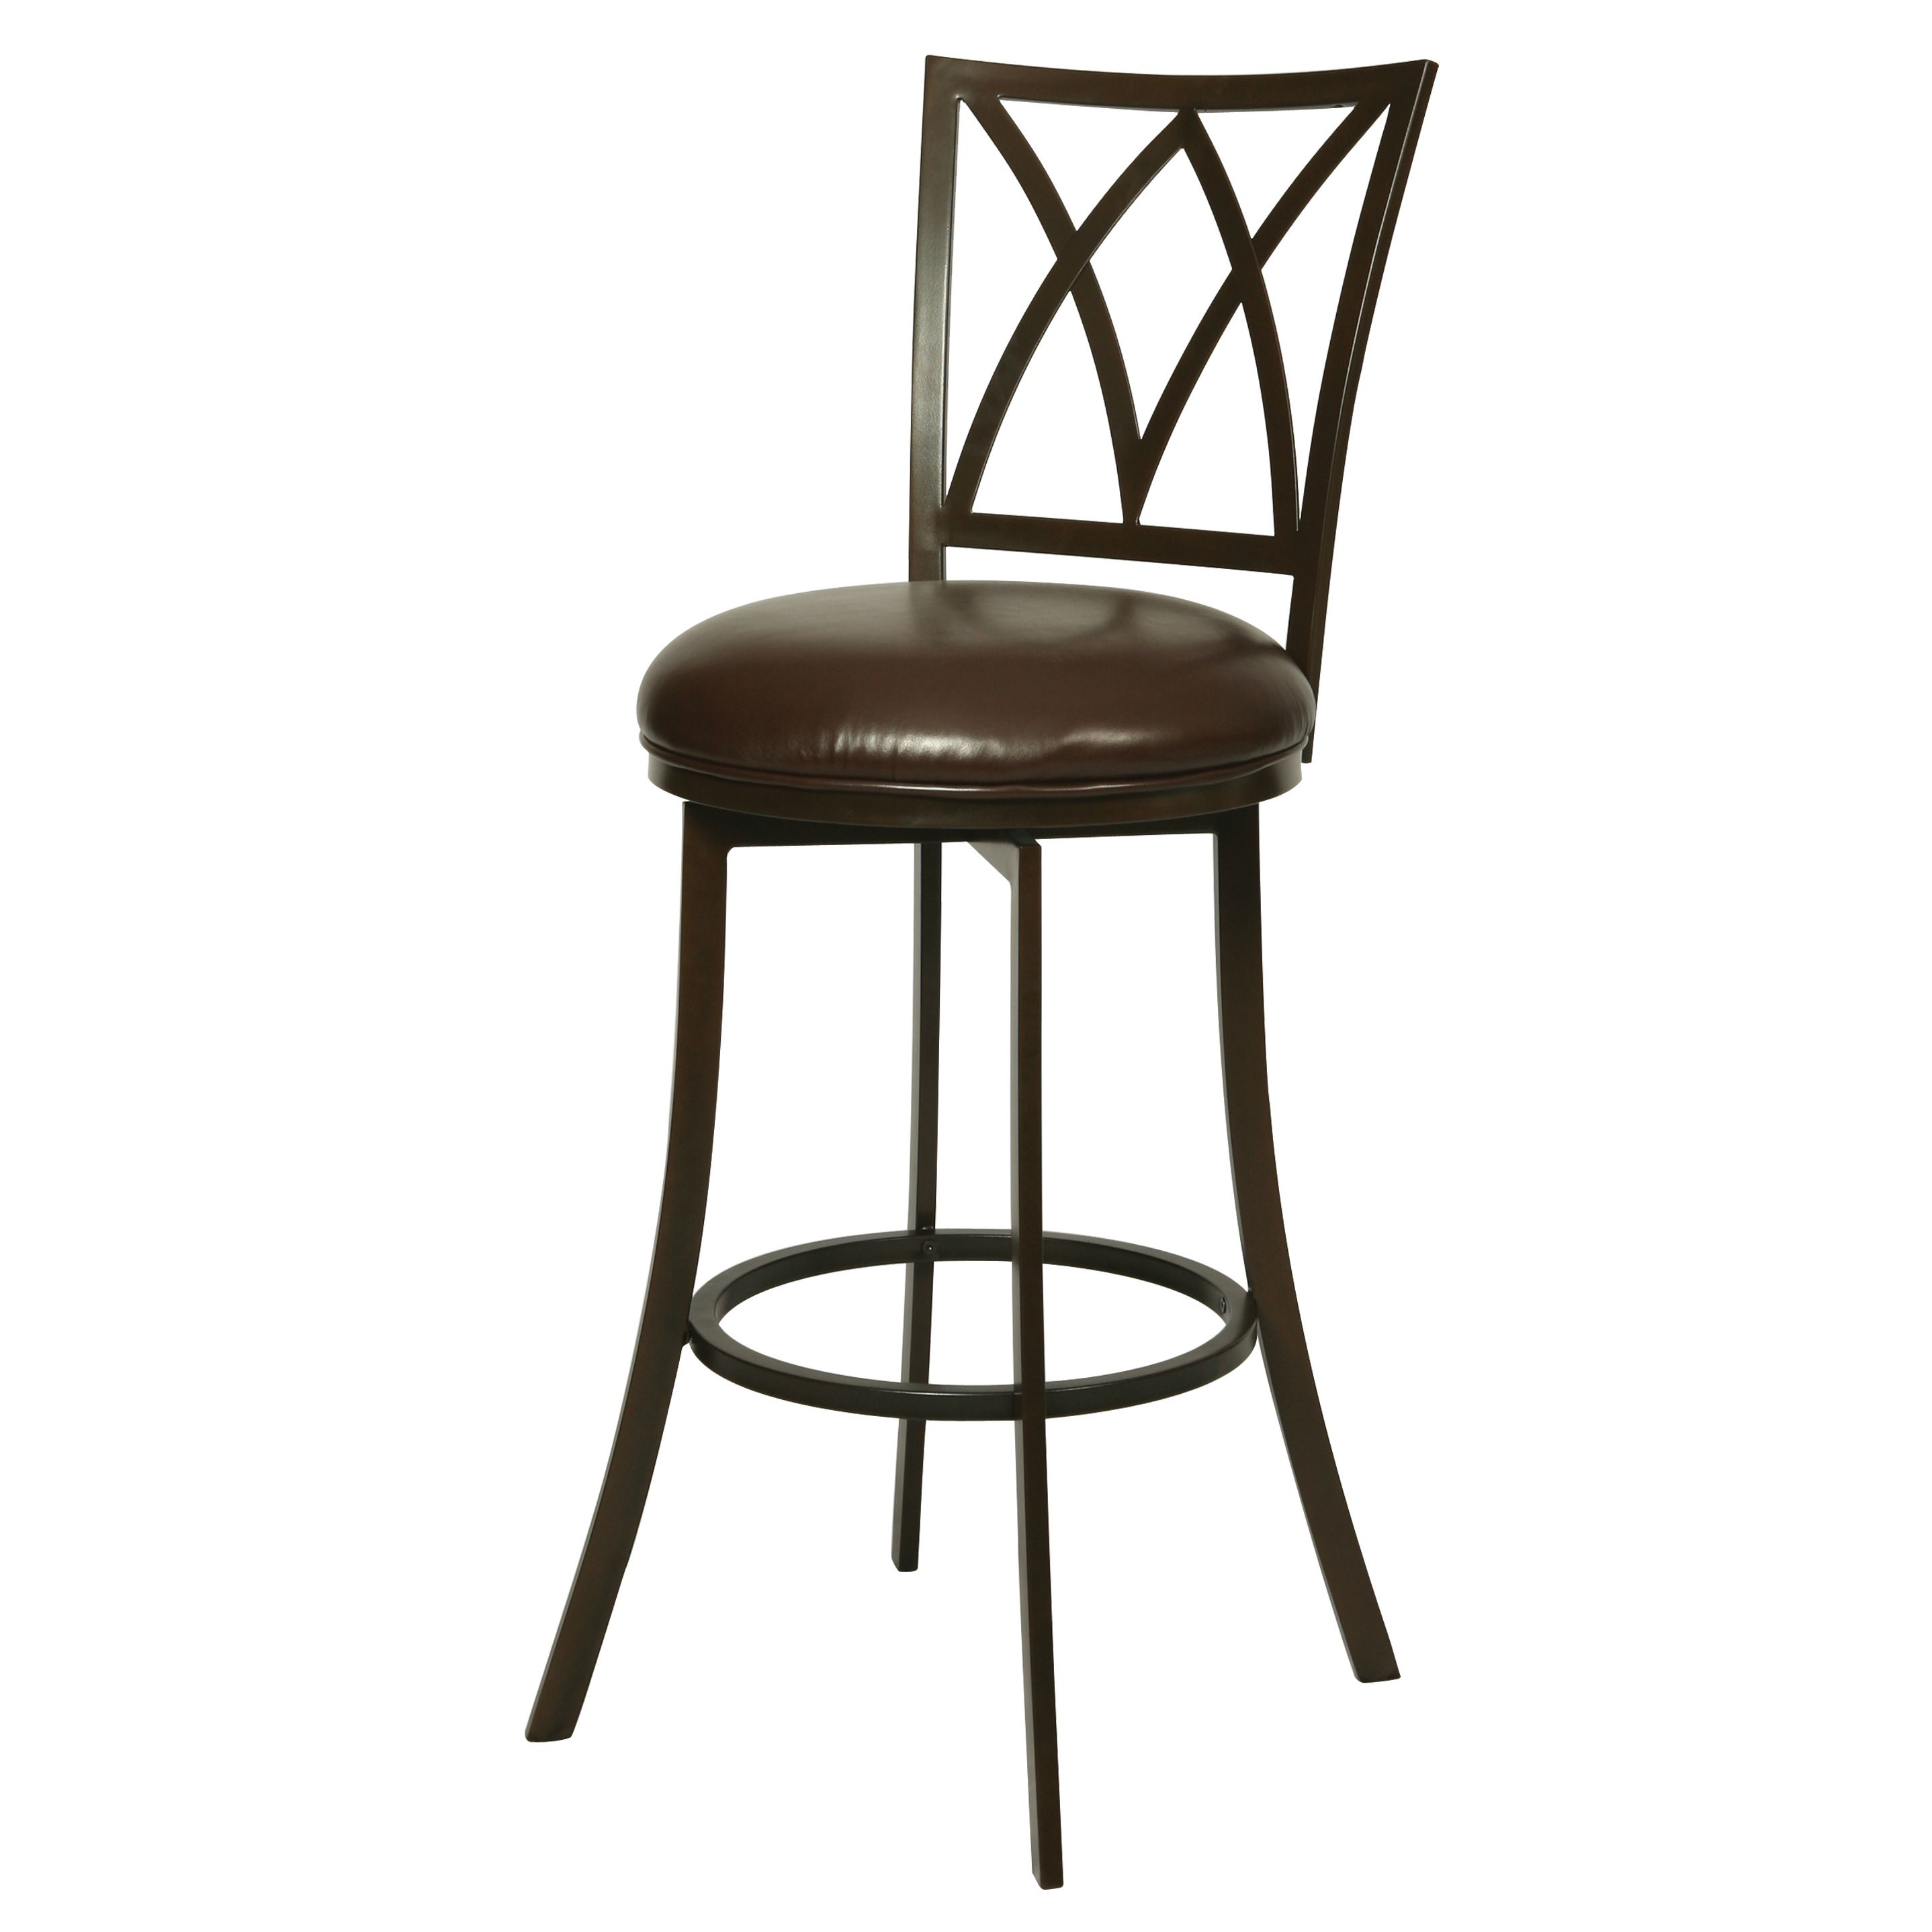 Cool Xenophon Kd Powder Coated Espresso Steel Faux Leather Swivel Theyellowbook Wood Chair Design Ideas Theyellowbookinfo